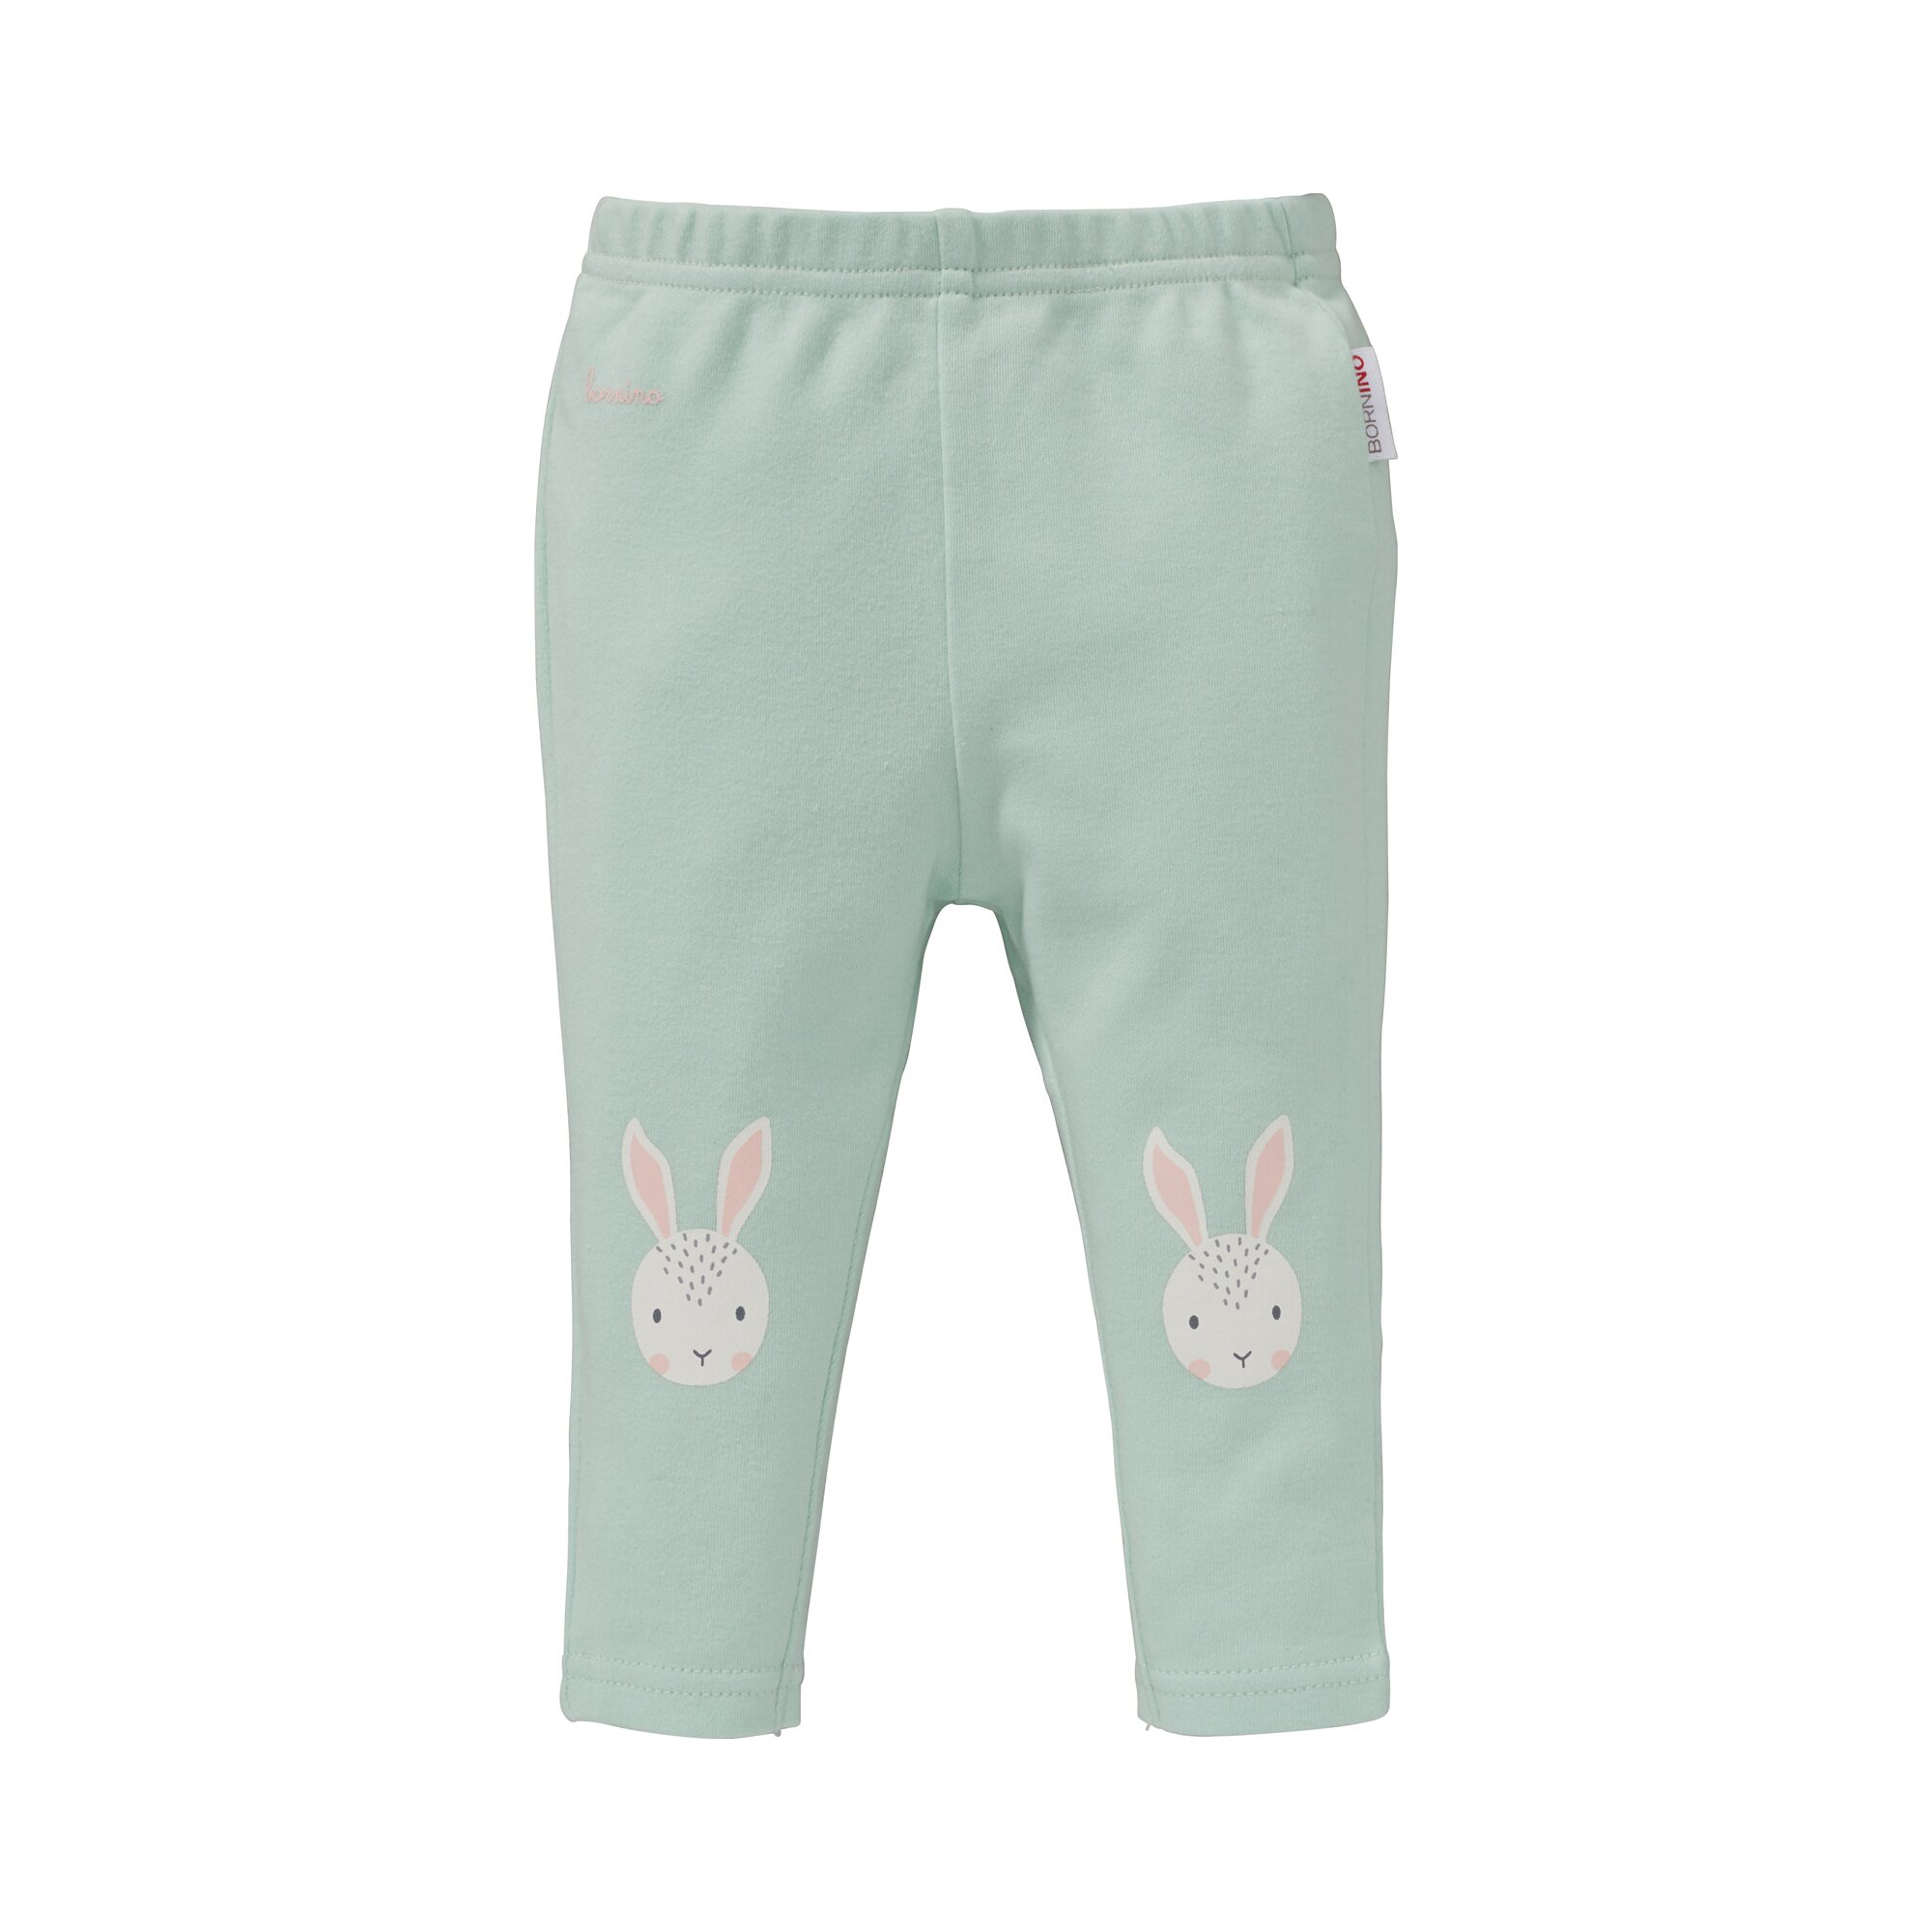 basics-2er-pack-leggings-hase